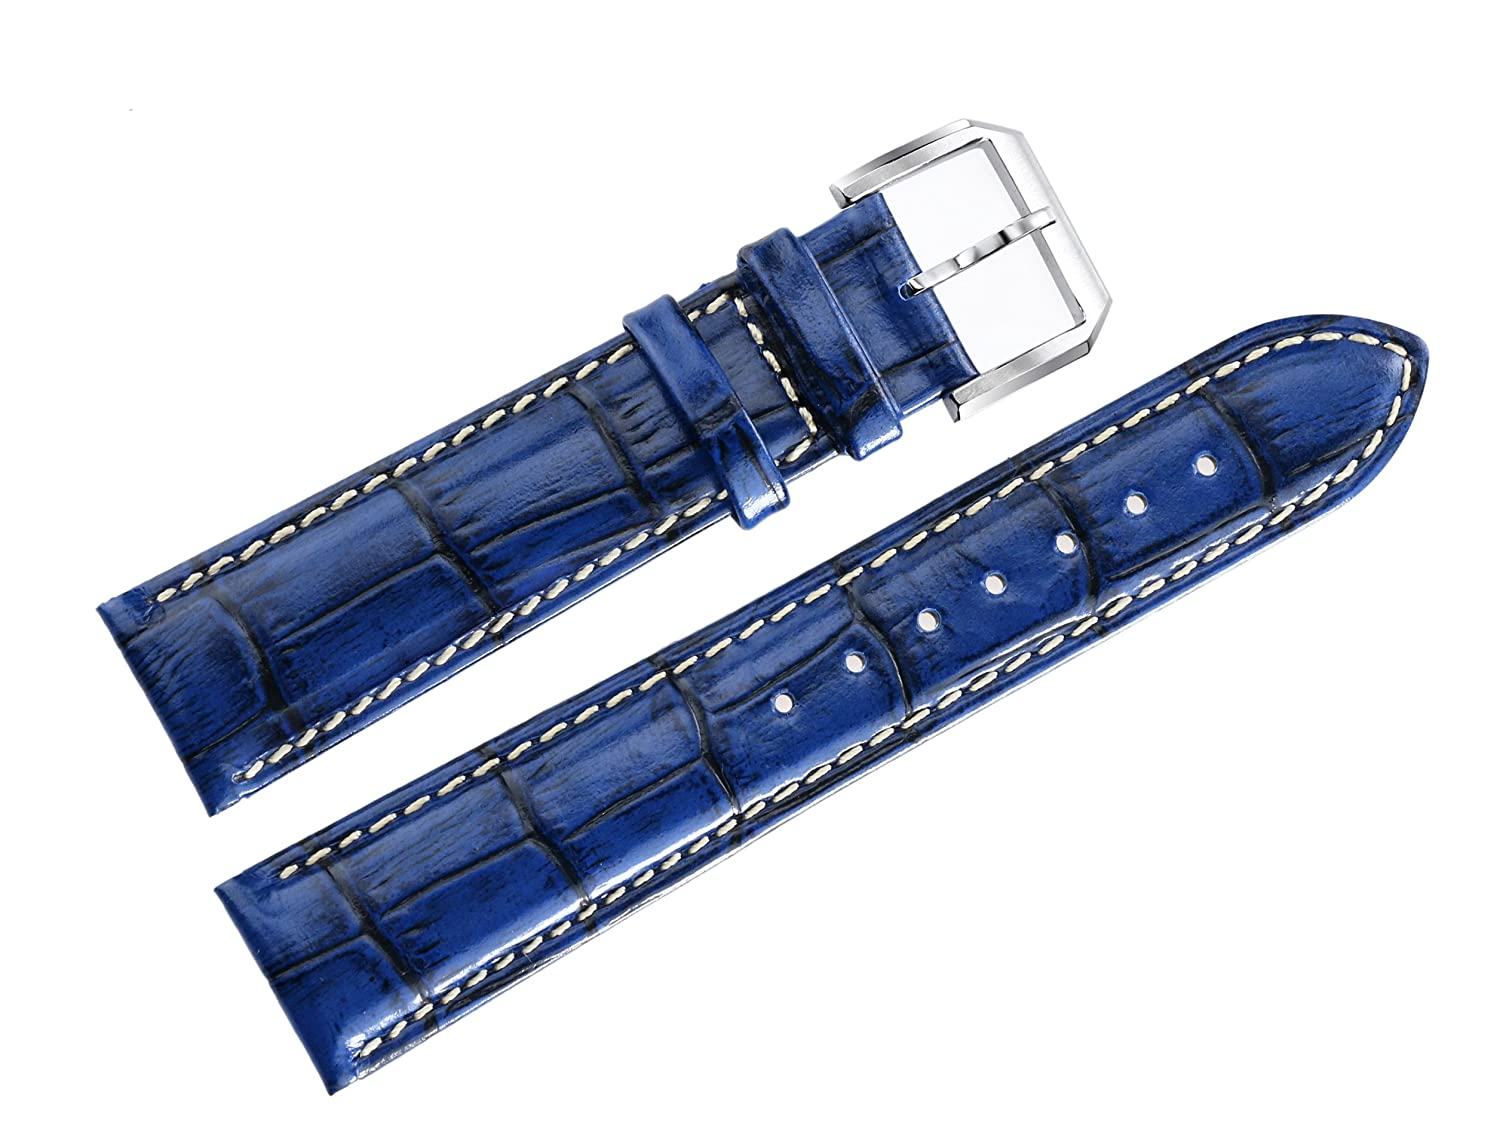 4bbfdd683 20mm Blue Luxury Watch Bands in Genuine Cowhide Leather with Padding  Crocodile Grain White Contrast Stitching: Amazon.co.uk: Watches